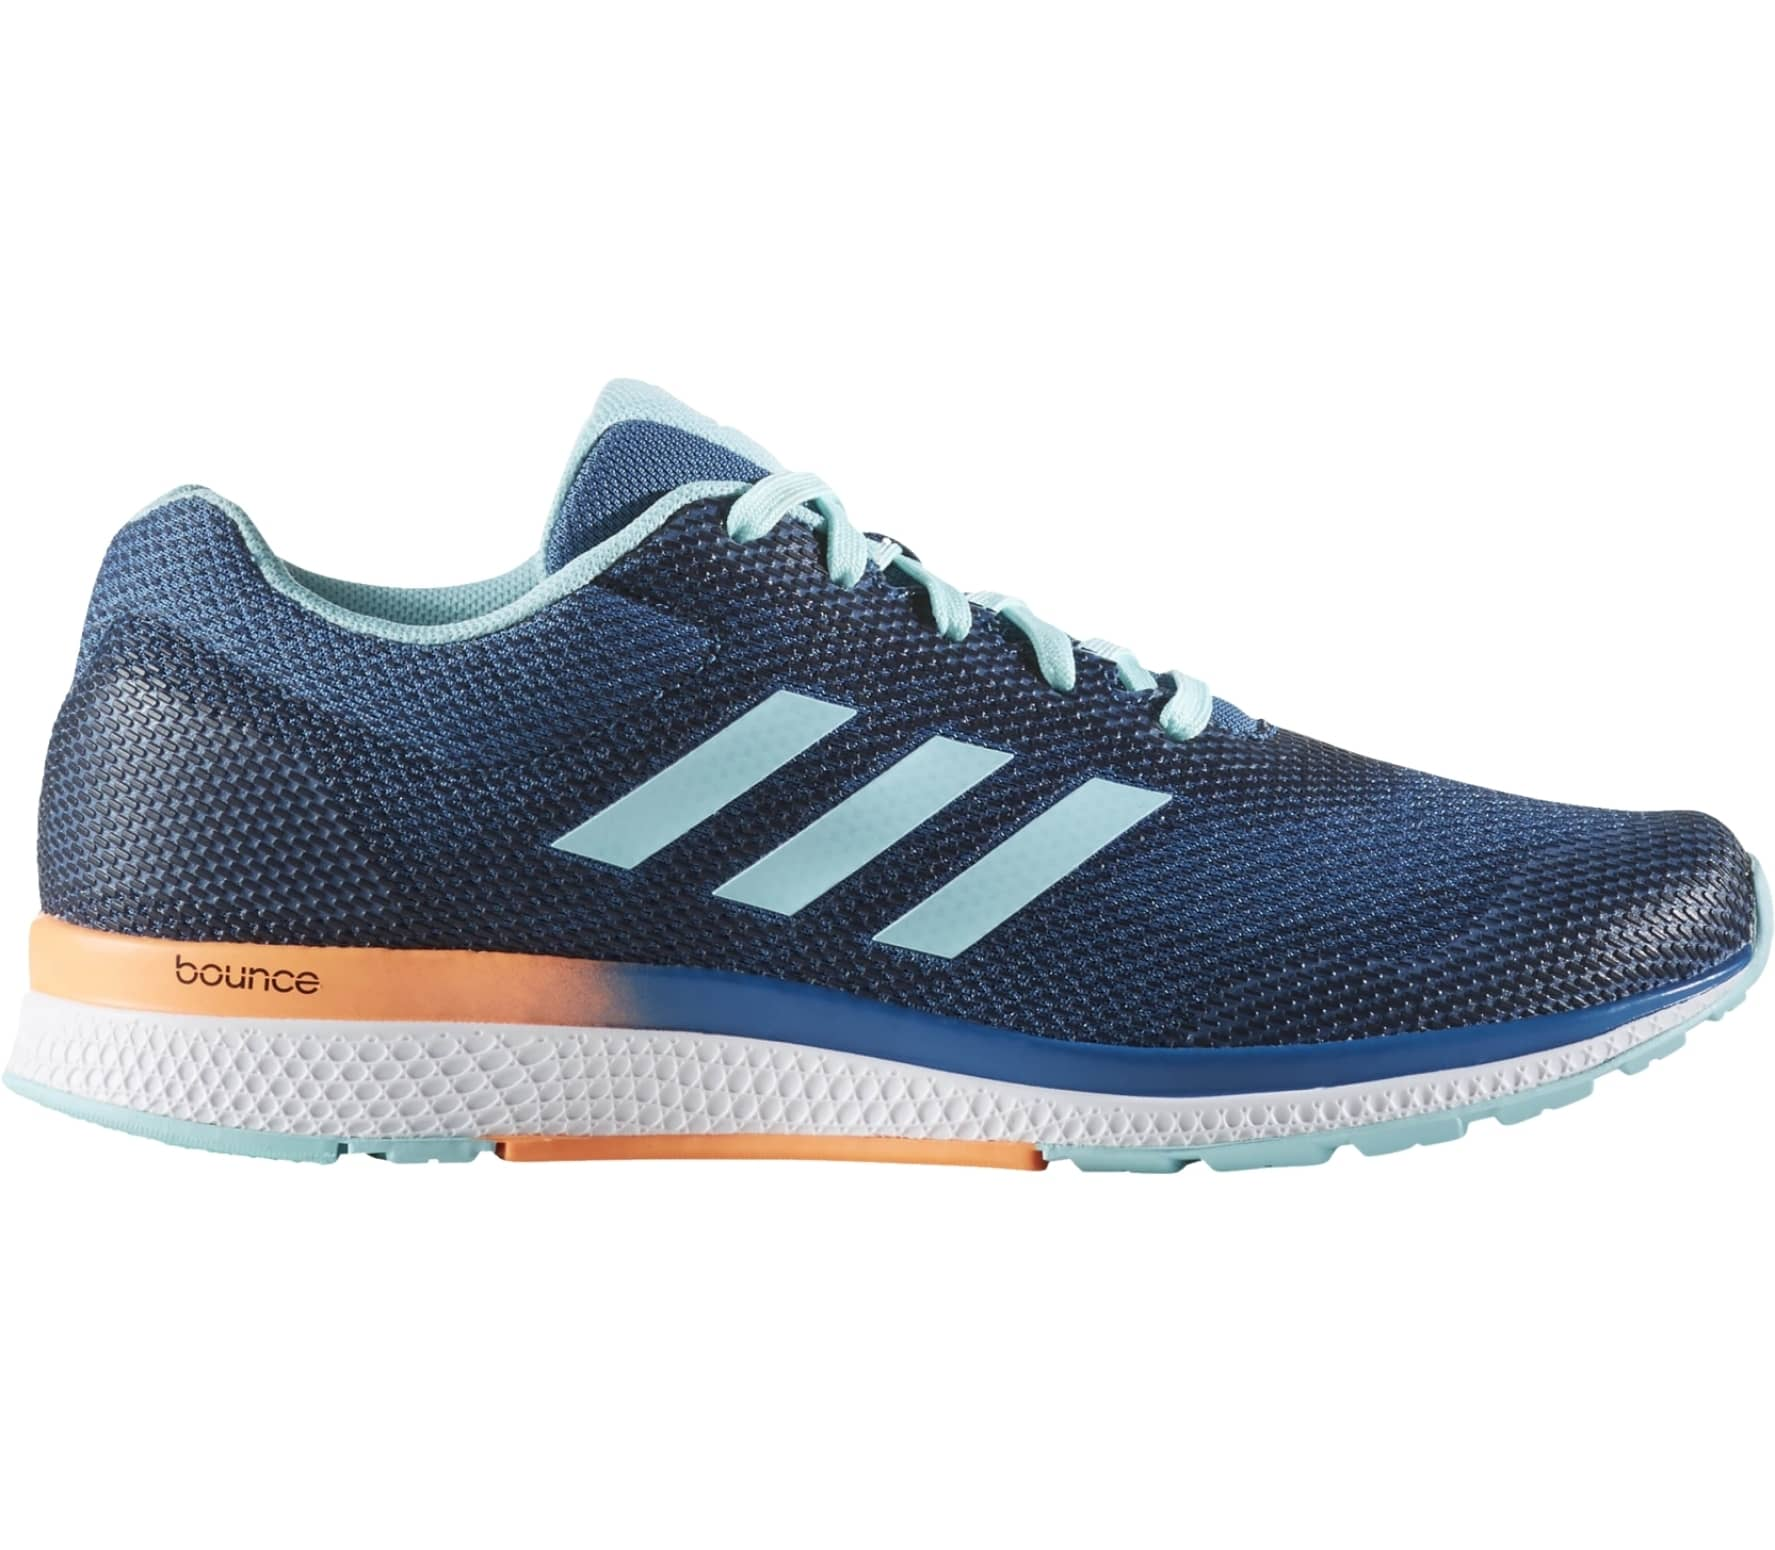 huge selection of 3e33d 98d6a Adidas - Mana Bounce 2 Aramis womens running shoes (blueorange)